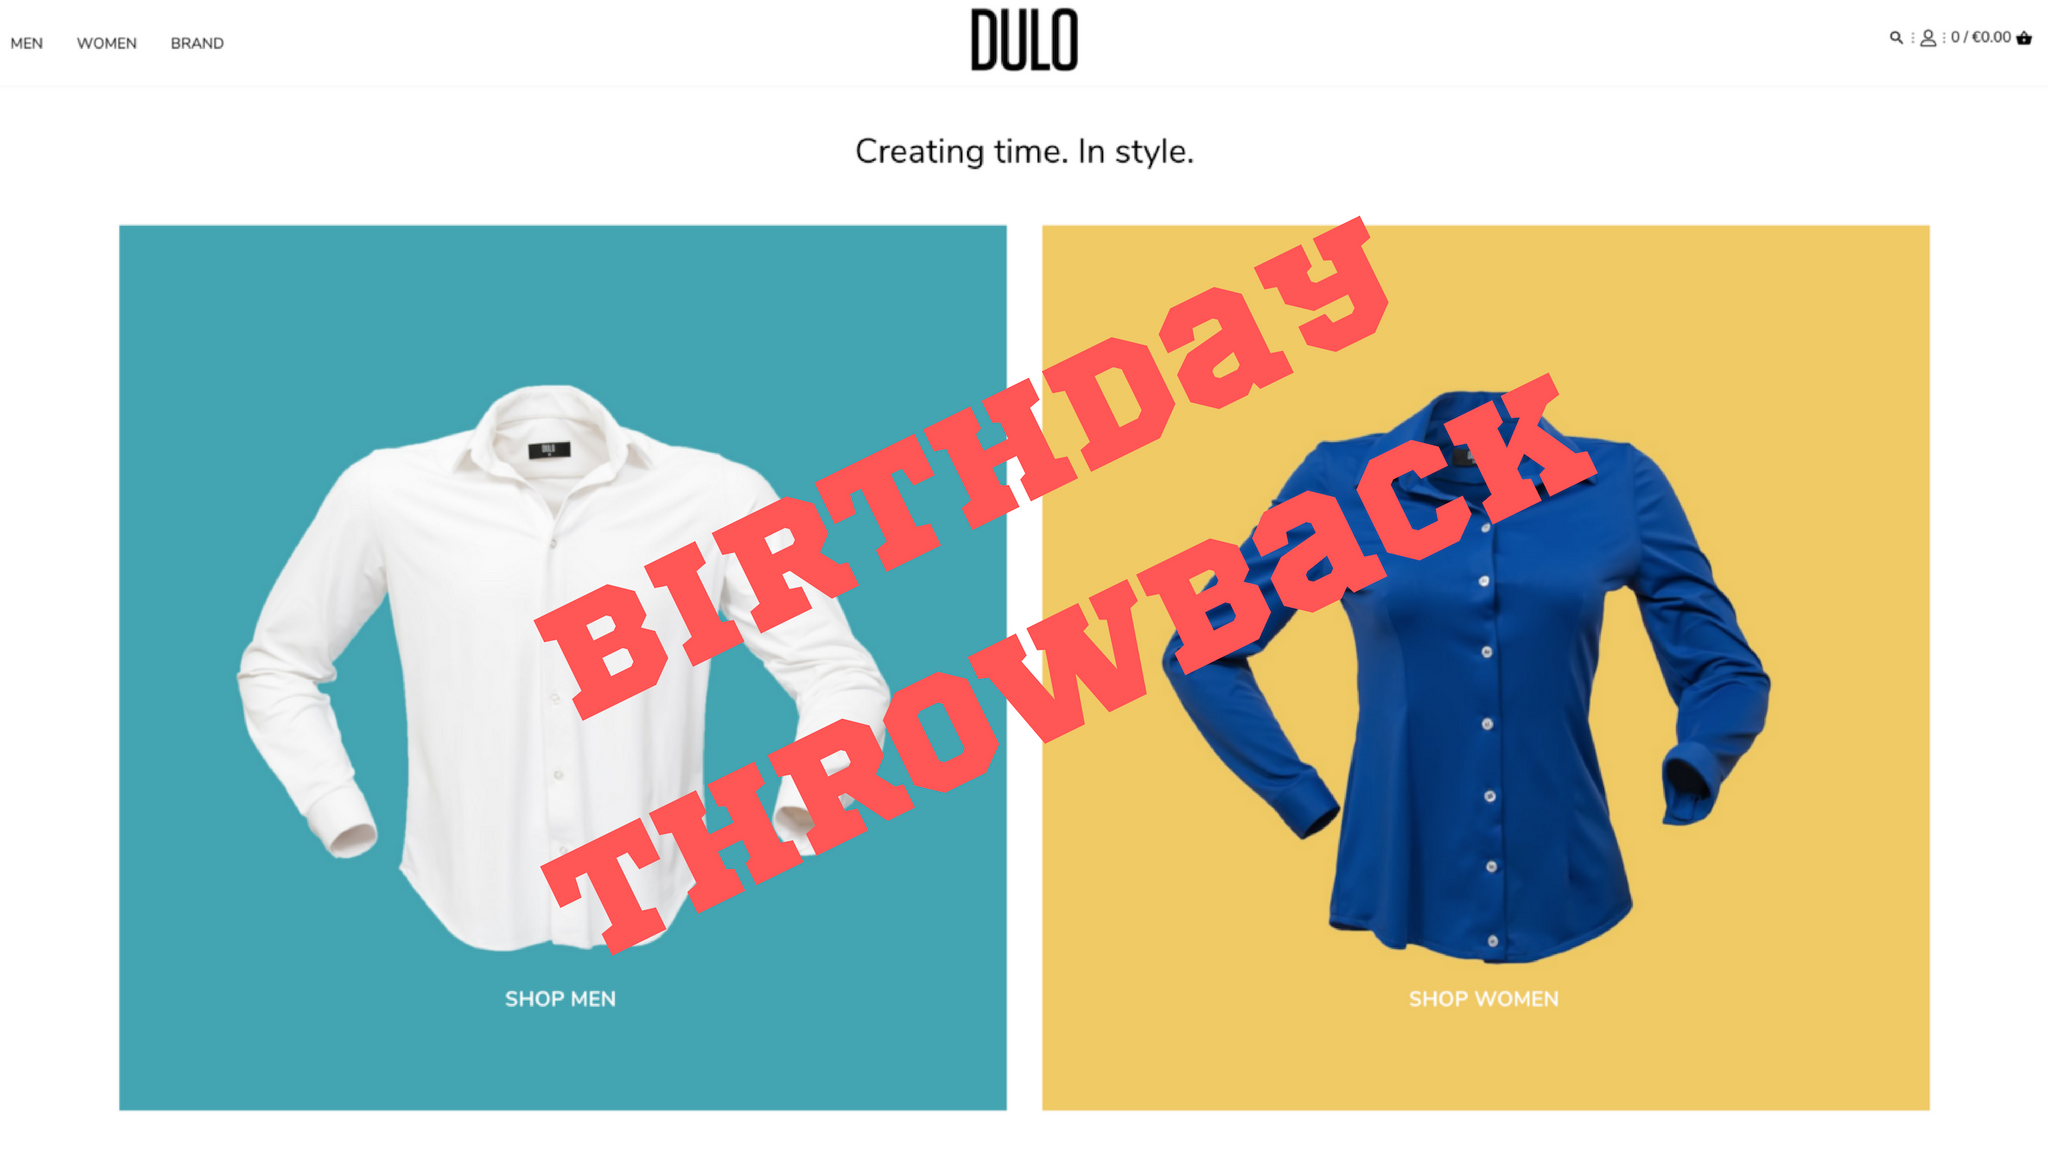 Origins #85 - DULO's First Birthday